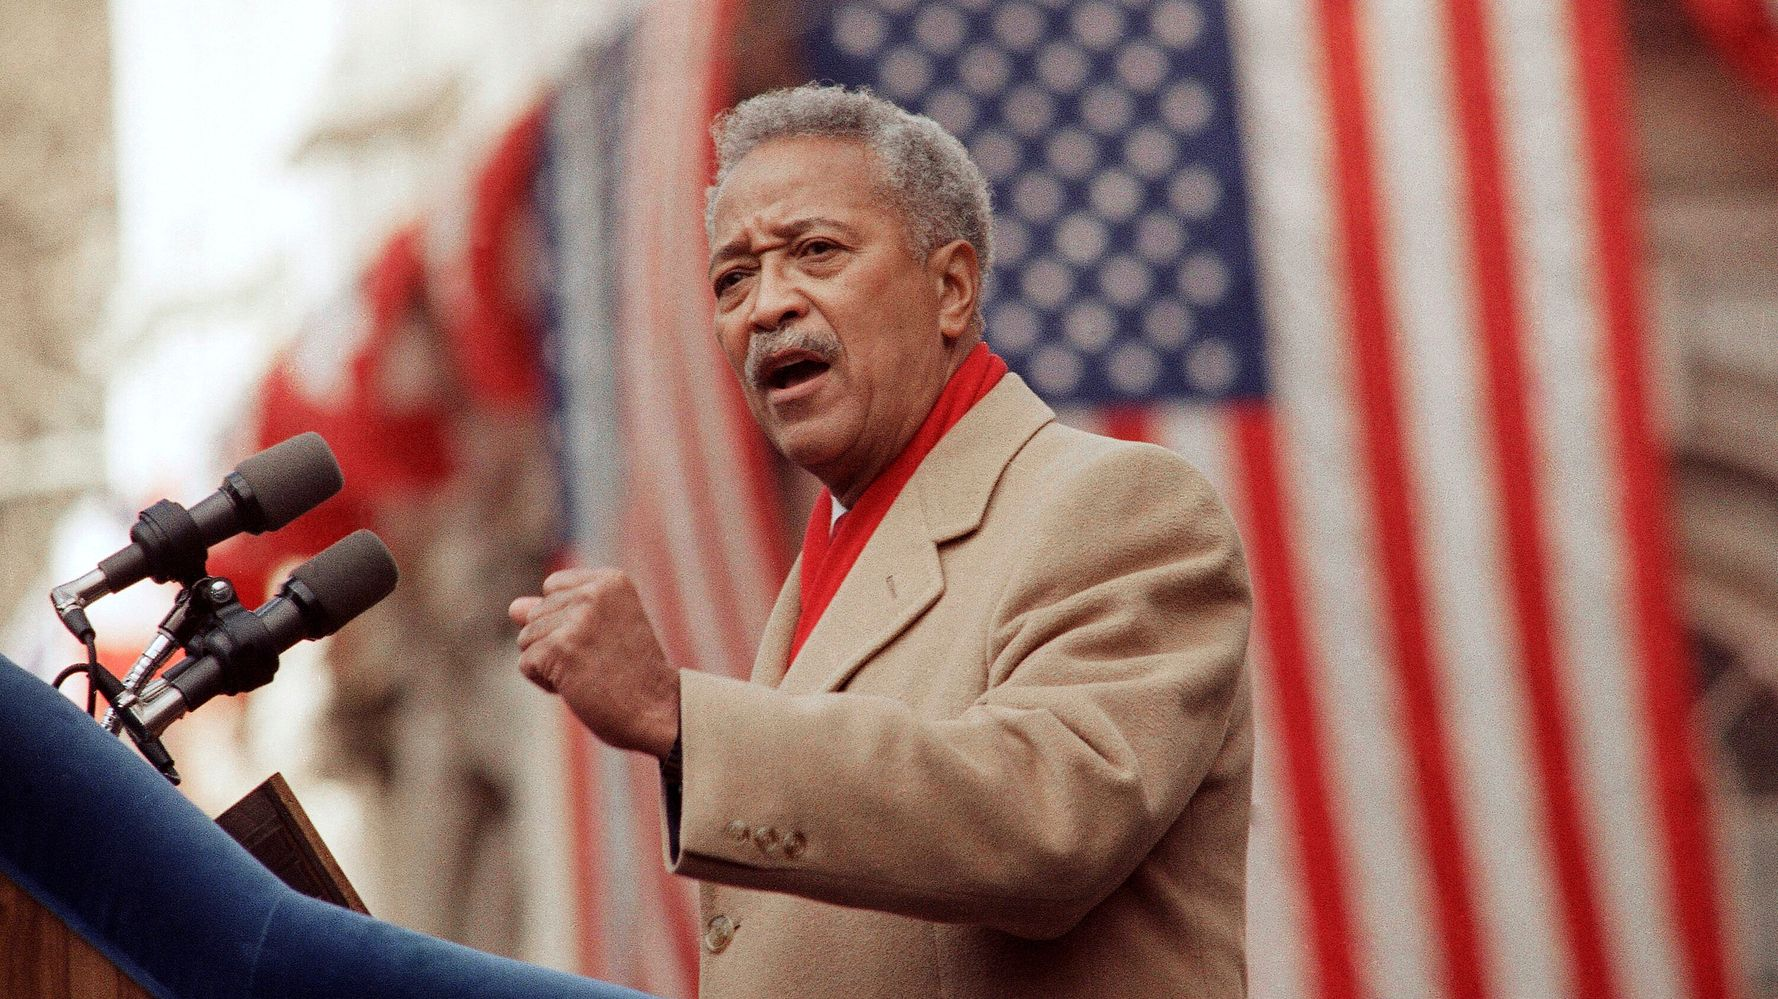 David Dinkins, NYC's First Black Mayor, Dies At 93